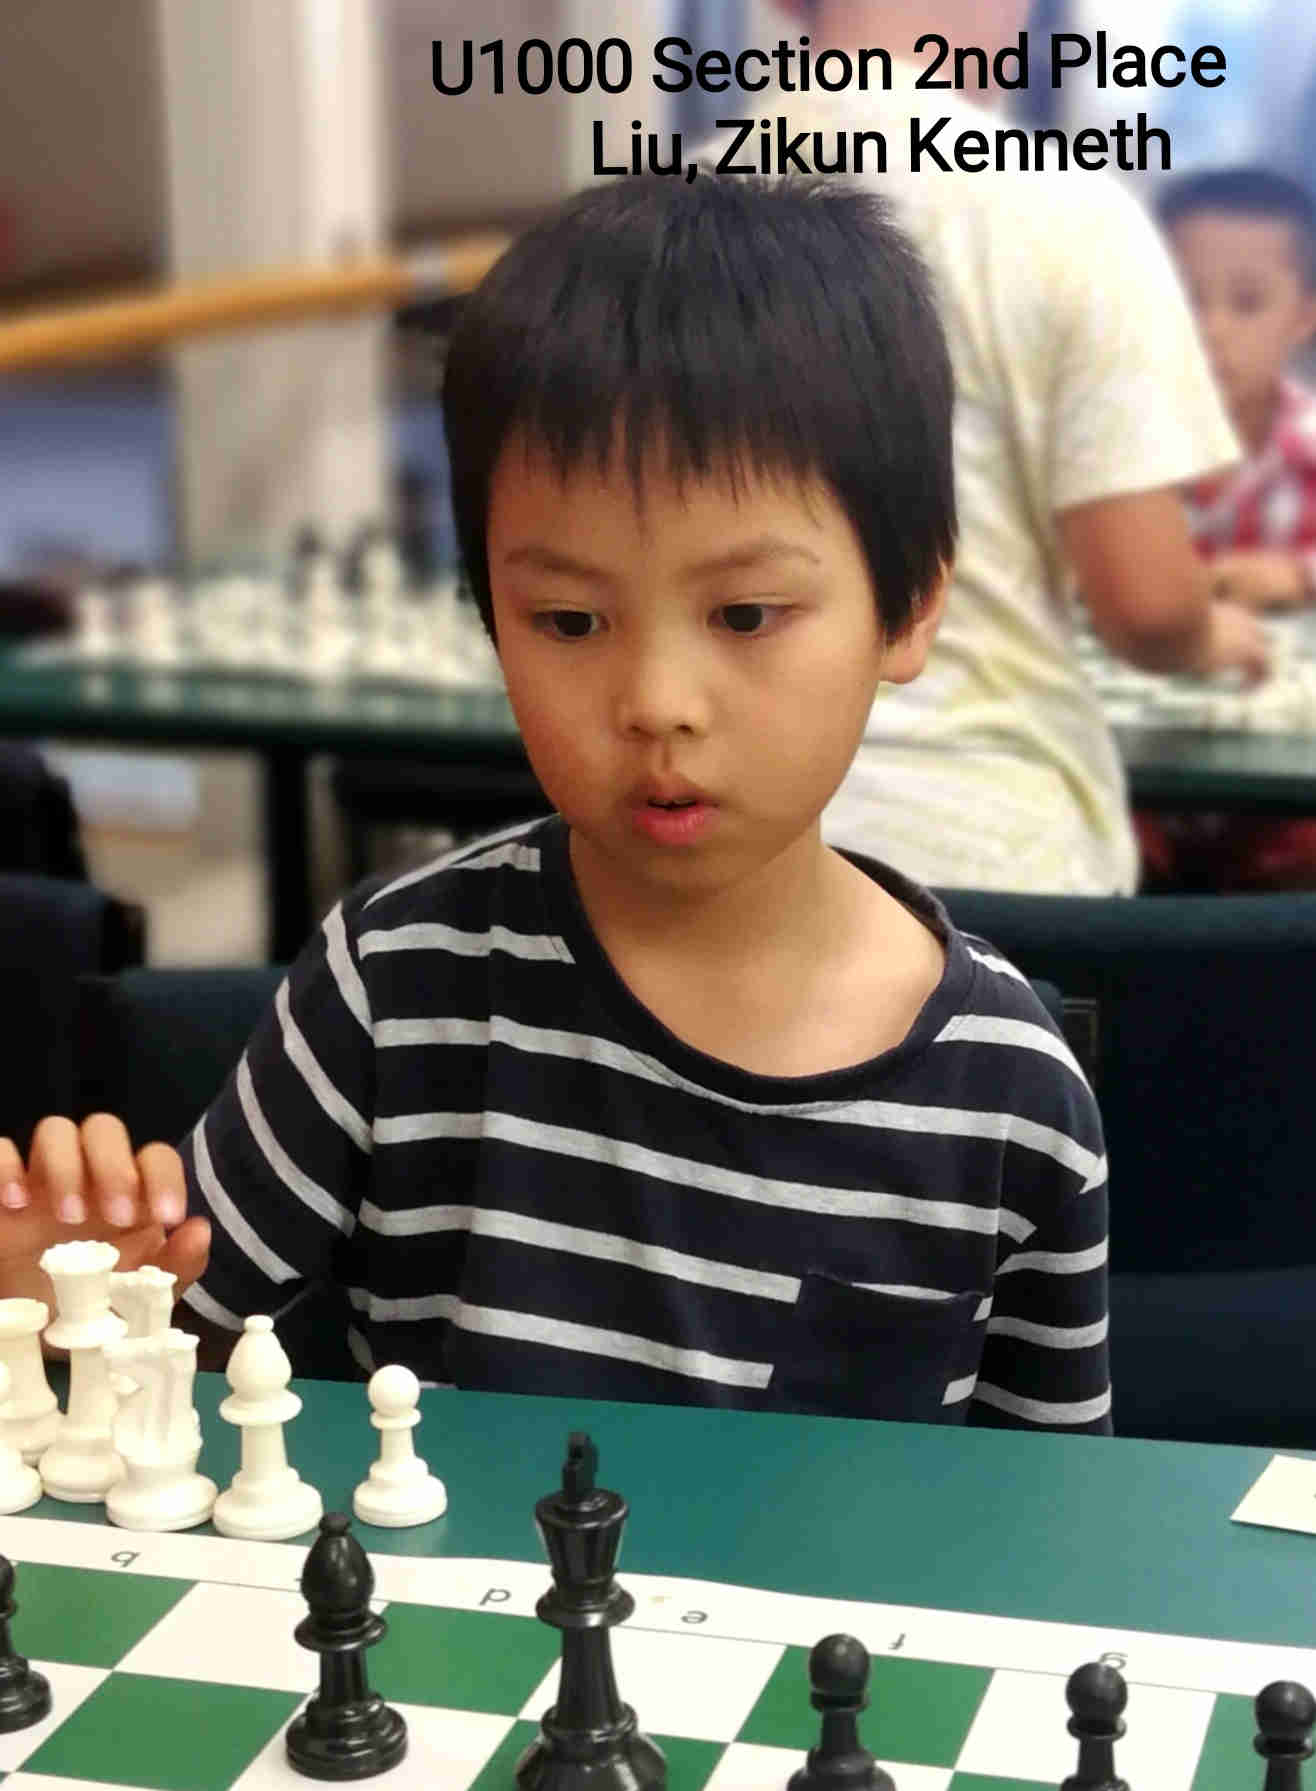 New Zealand Chess - Results